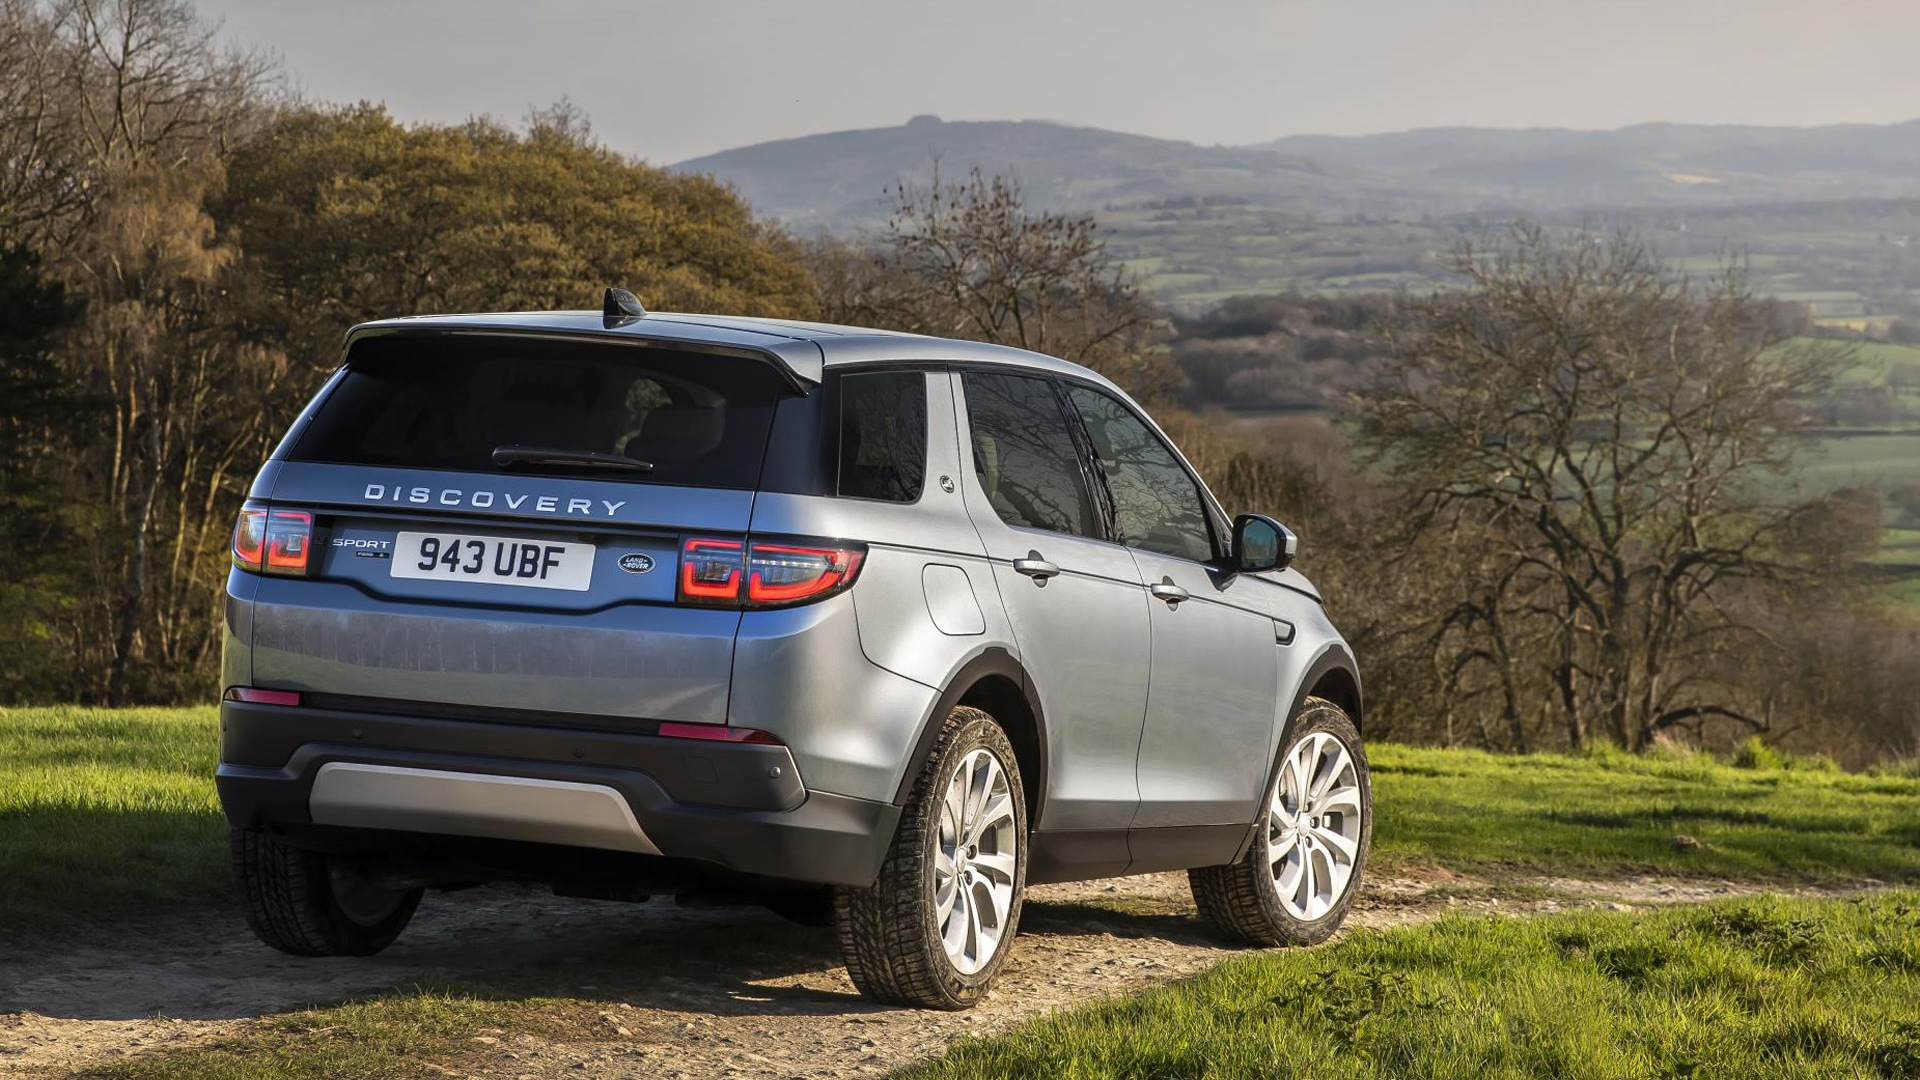 72 The Best 2020 Land Rover Discovery Pictures